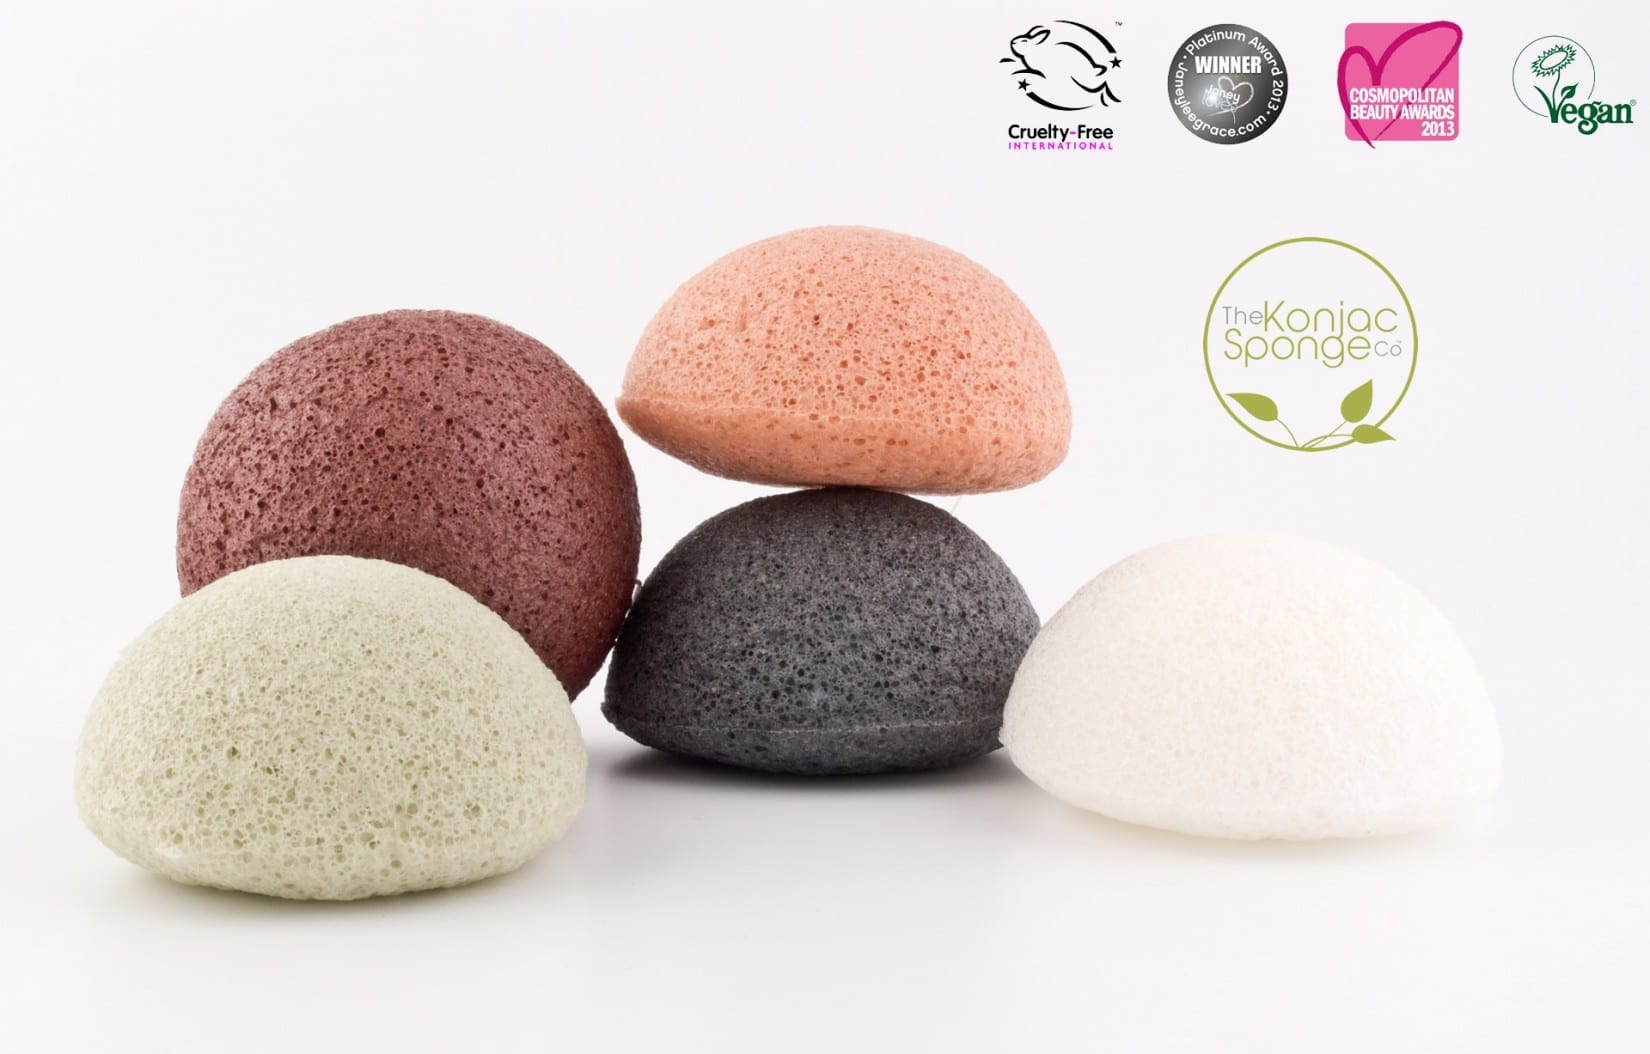 Konjac-Sponges-Facial-Group.jpg